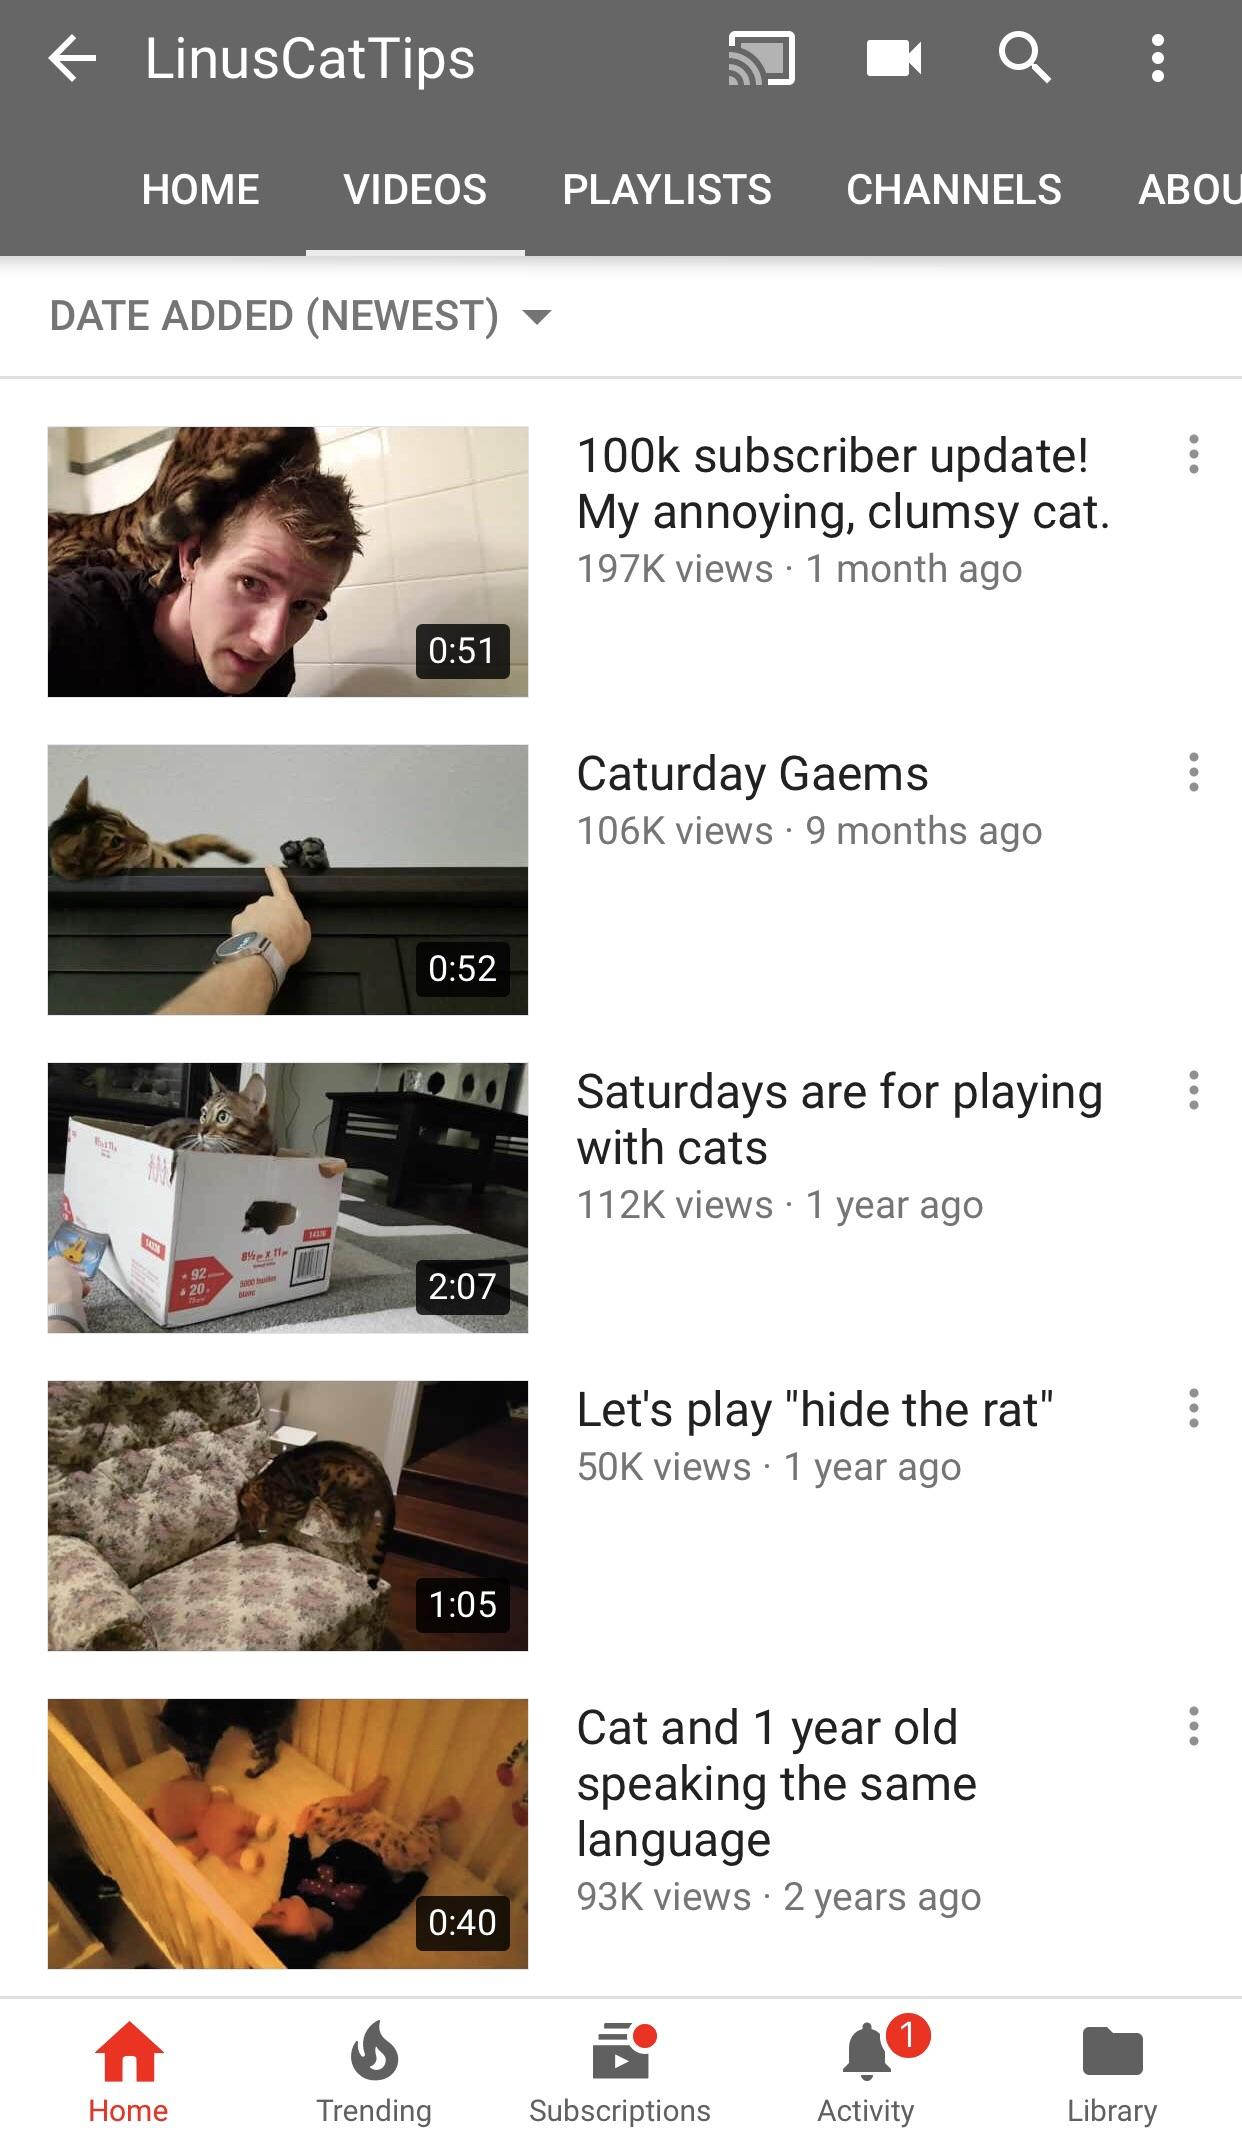 Can we please take some time to appreciate that Linus also has a Cat Tips channel : LinusTechTips